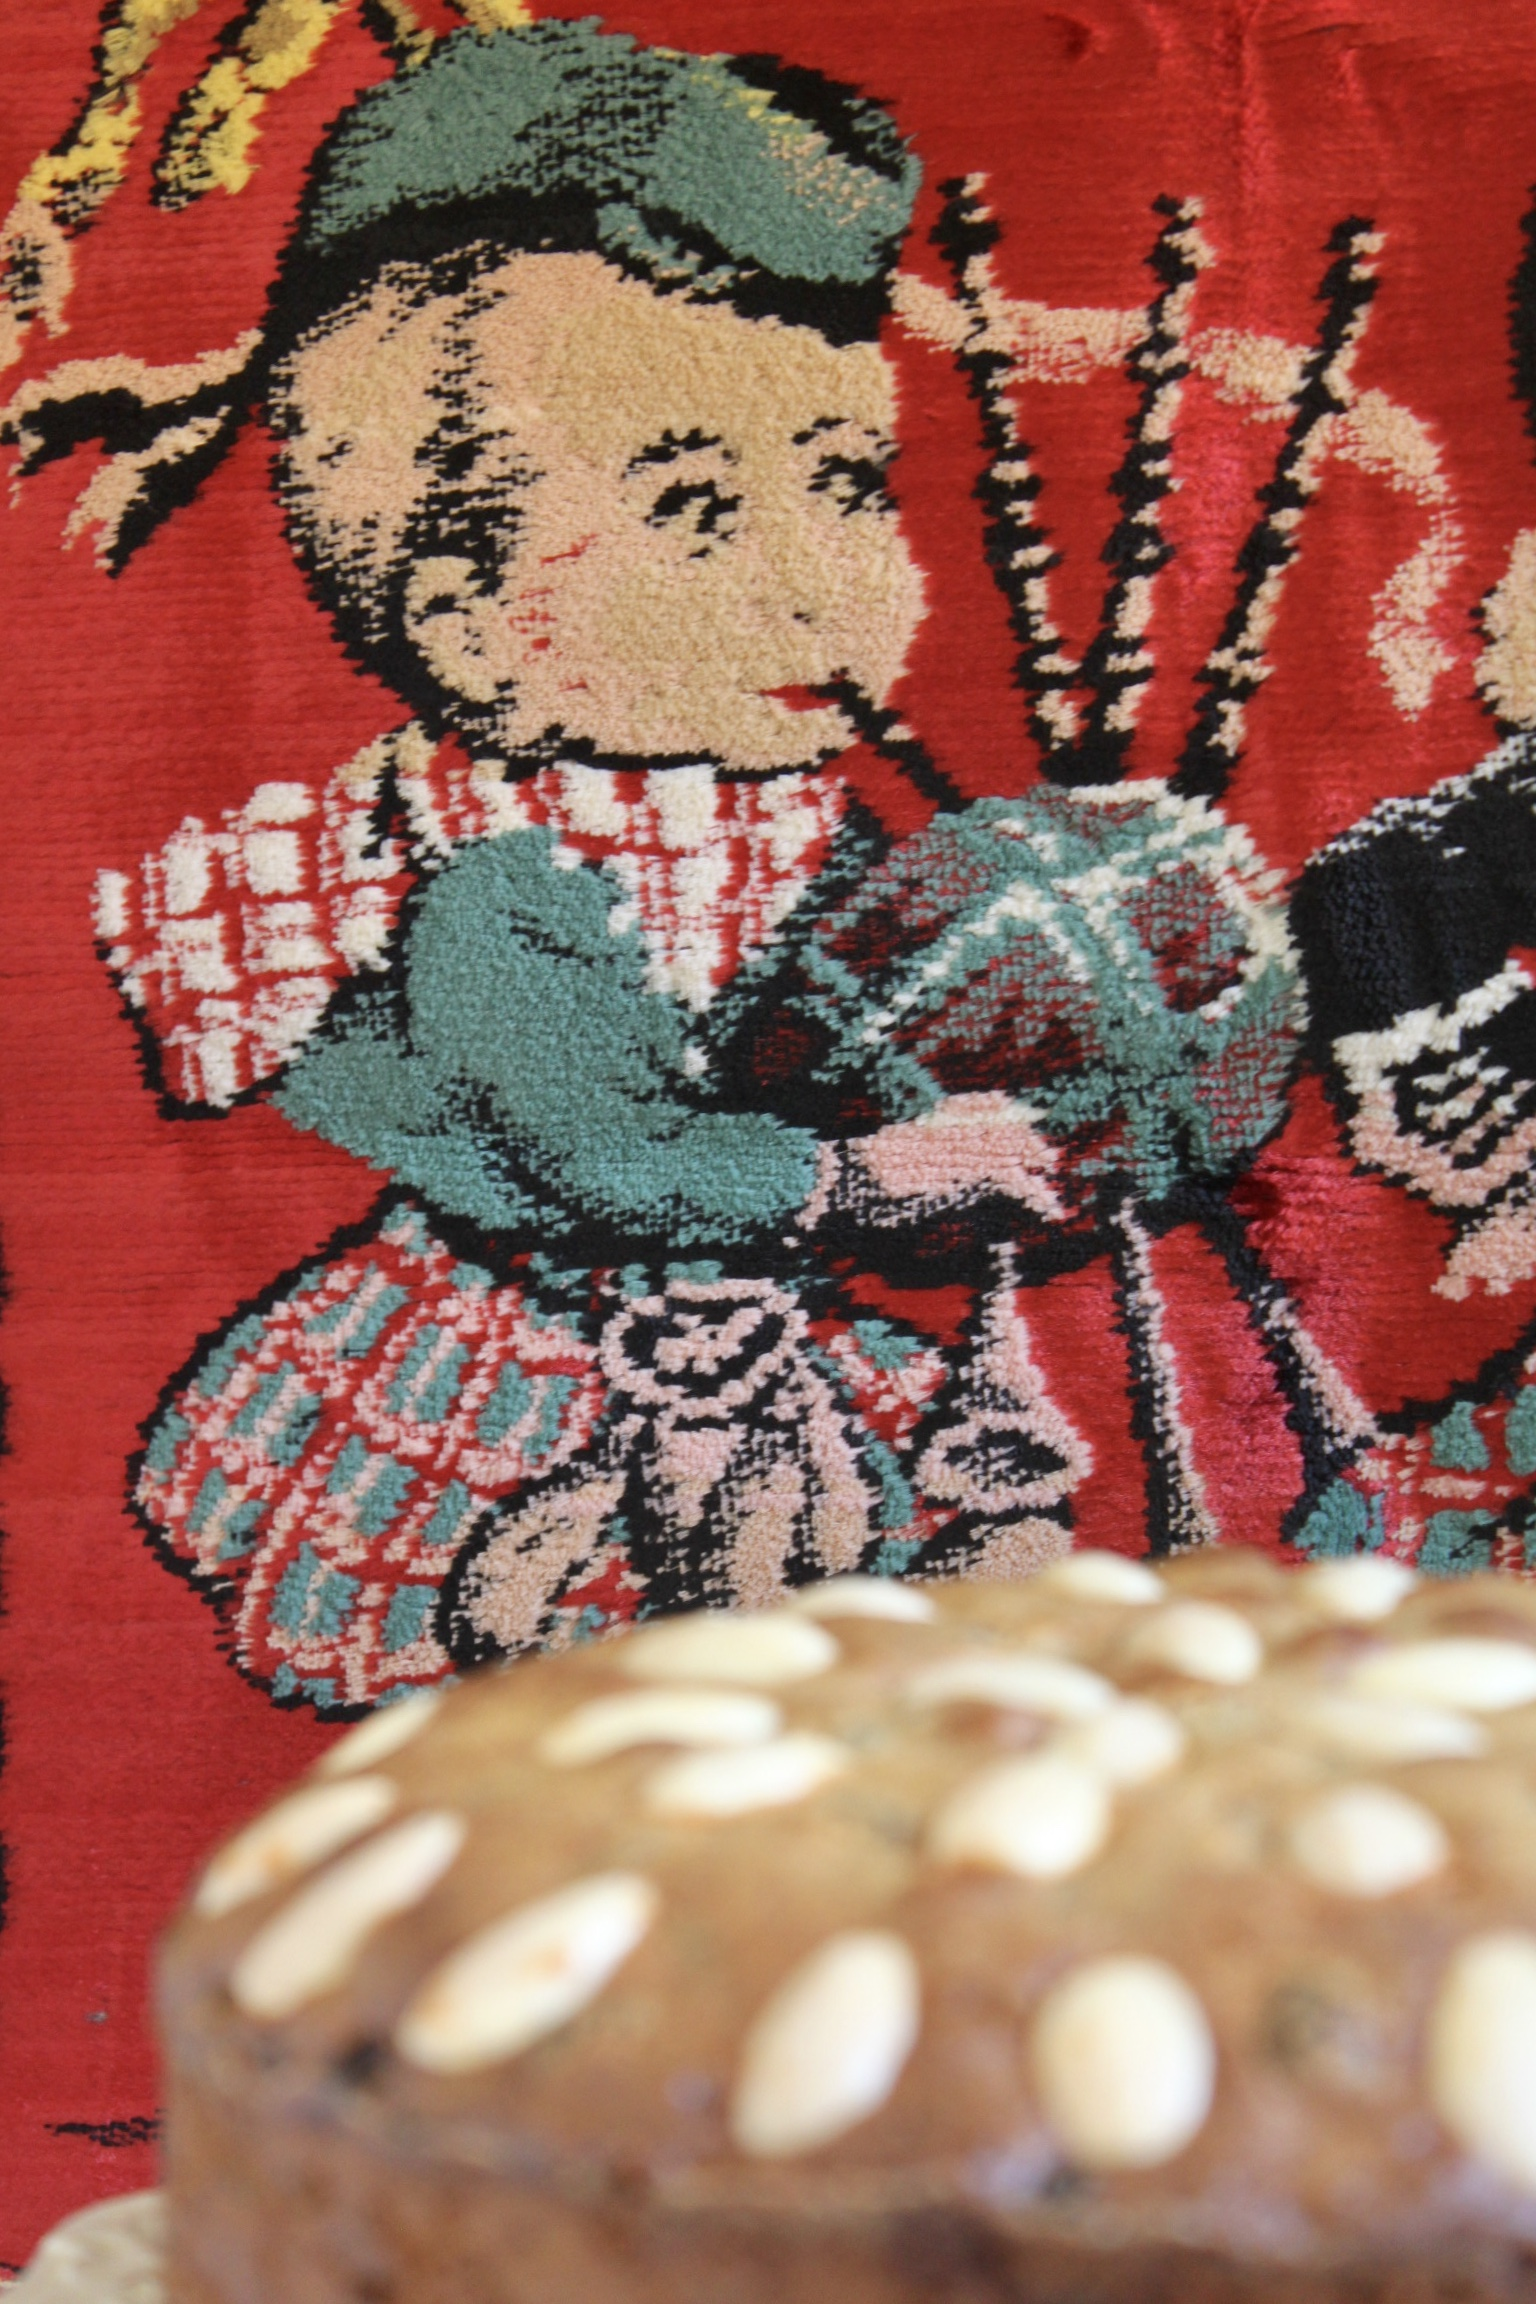 pillow of boy bagpiper with top of Dundee cake in the foreground